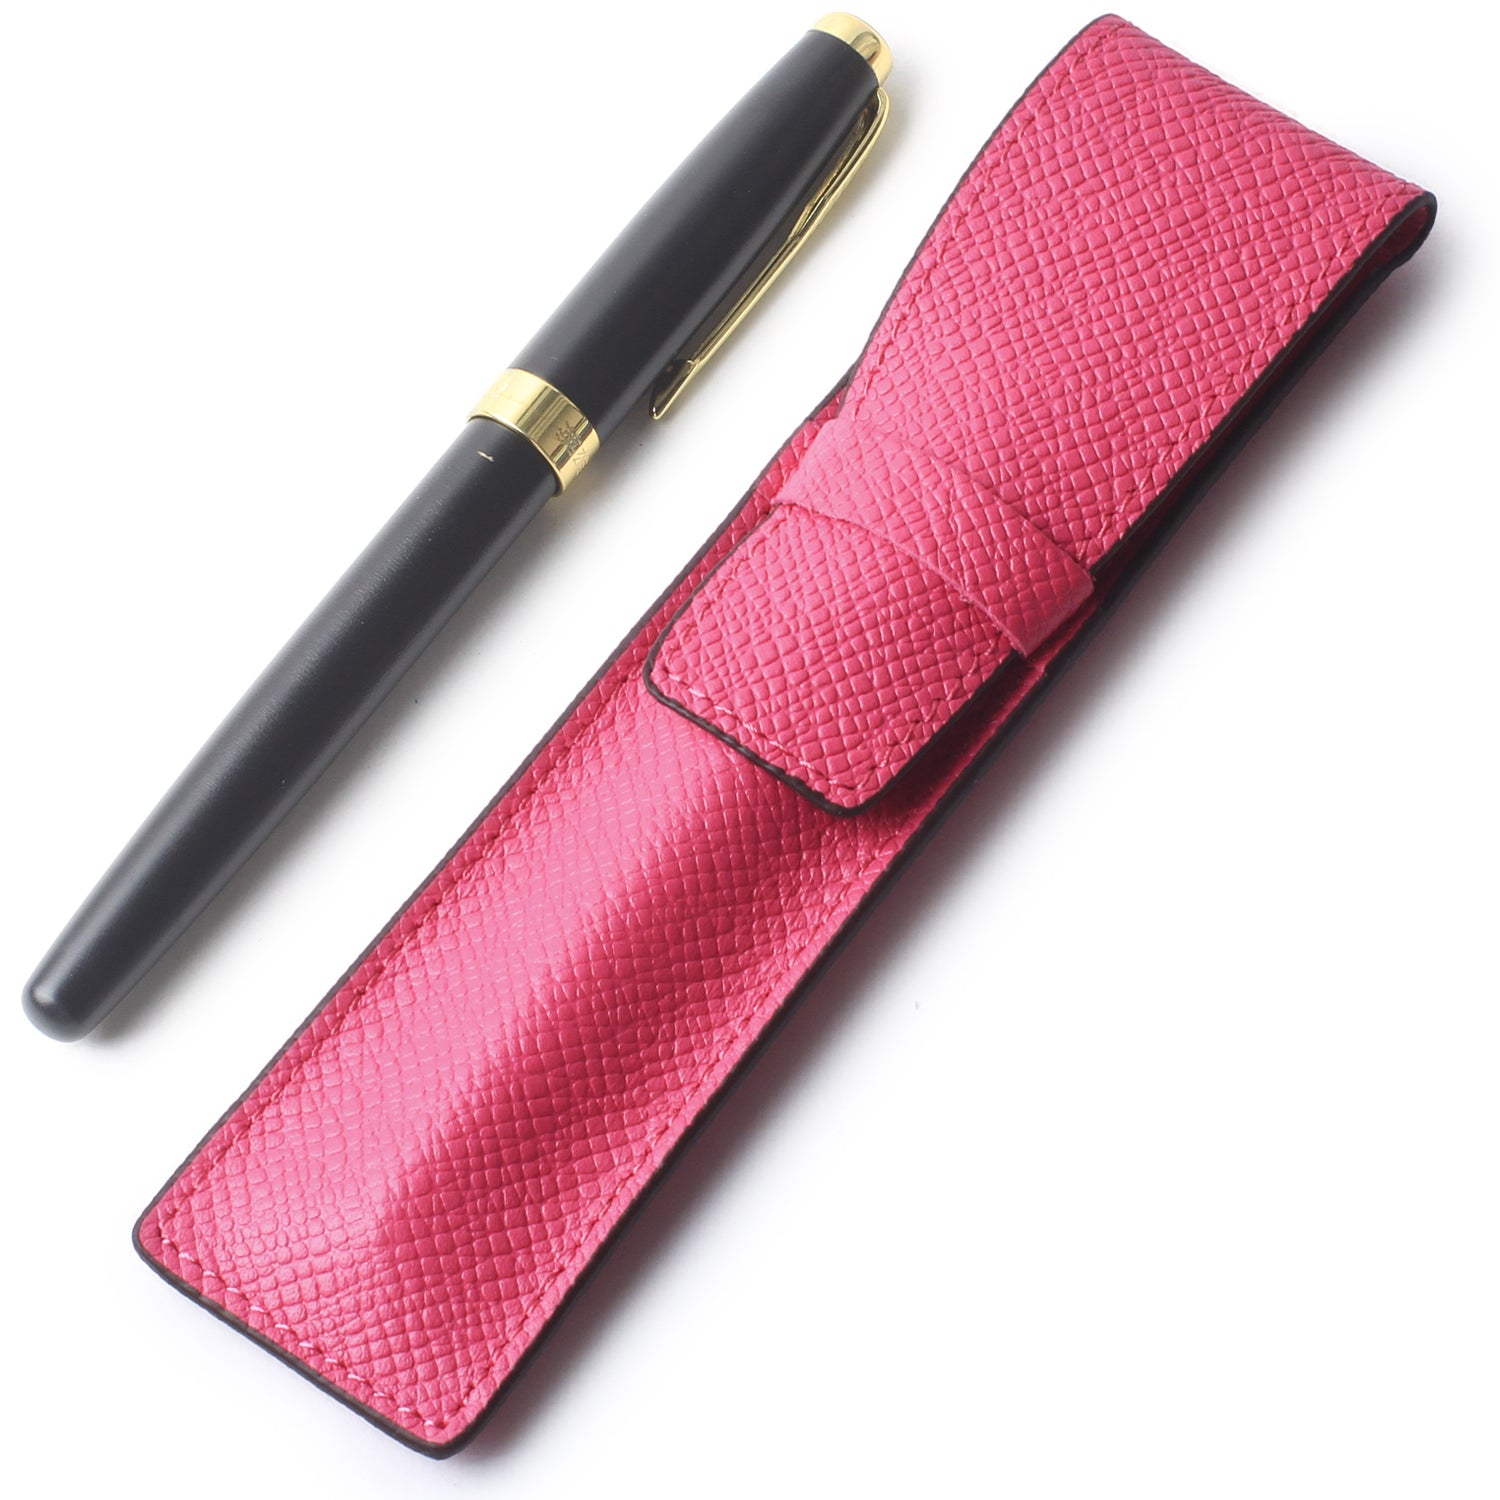 Borgasets Full Grain Leather Single Pen Case Holder Pencil Bag for Men Women Pink - Borgasets